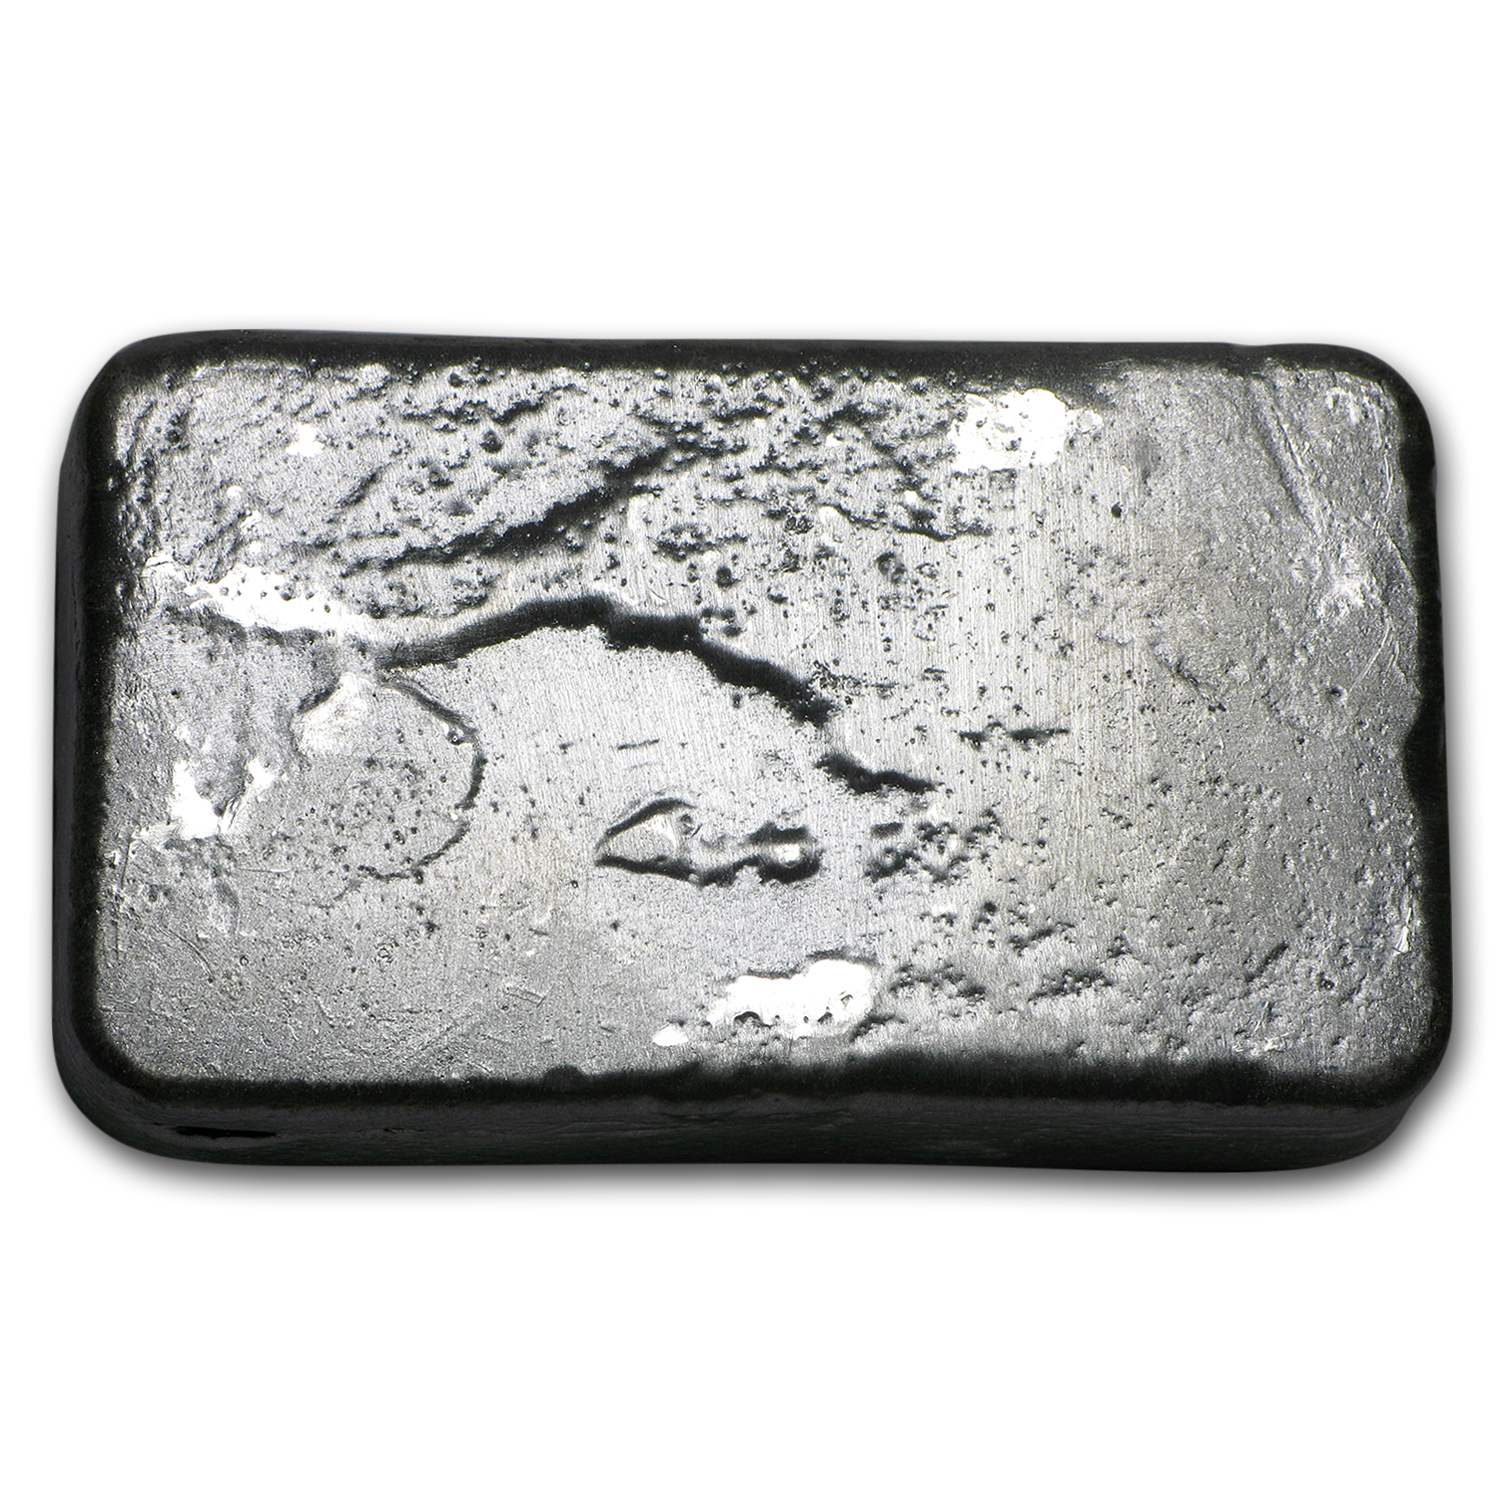 10 oz Silver Bar - Don't Tread On Me (PG&G)